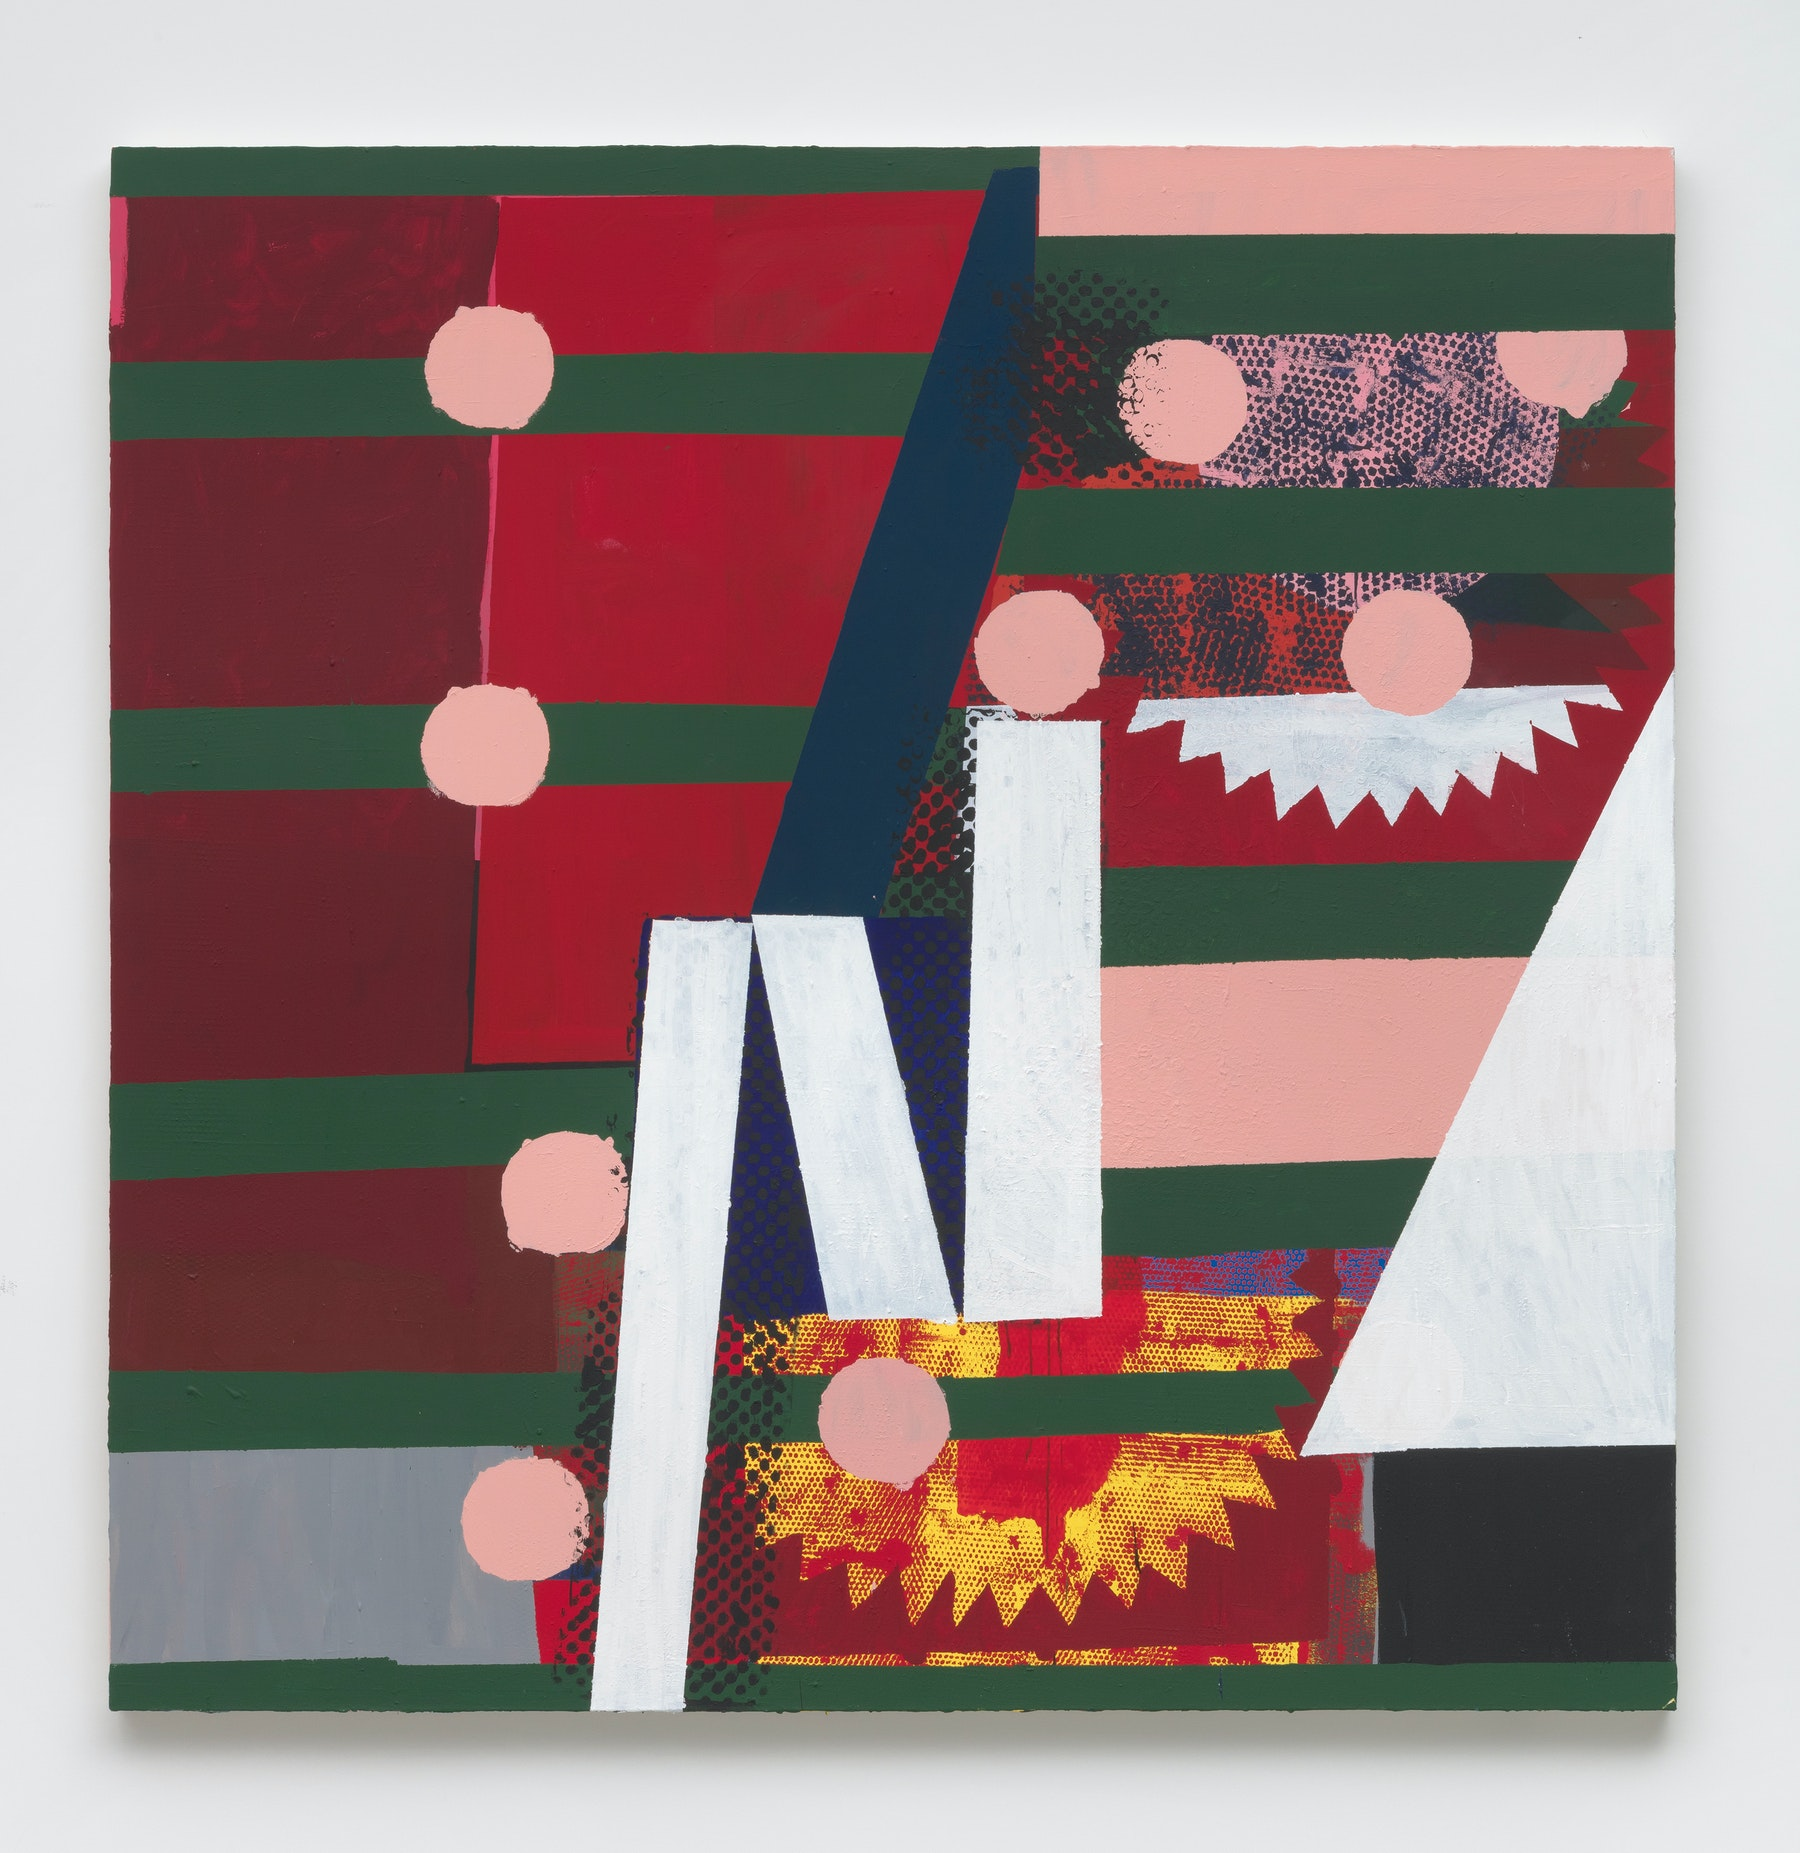 """Nick Aguayo """"pizzicato,"""" 2019 Acrylic and marble dust on canvas 86"""" x 86"""" x 2"""" [HxWxD] (218.44 x 218.44 x 5.08 cm) Inventory #AGU192 Courtesy of the artist and Vielmetter Los Angeles Photo credit: Robert Wedemeyer"""